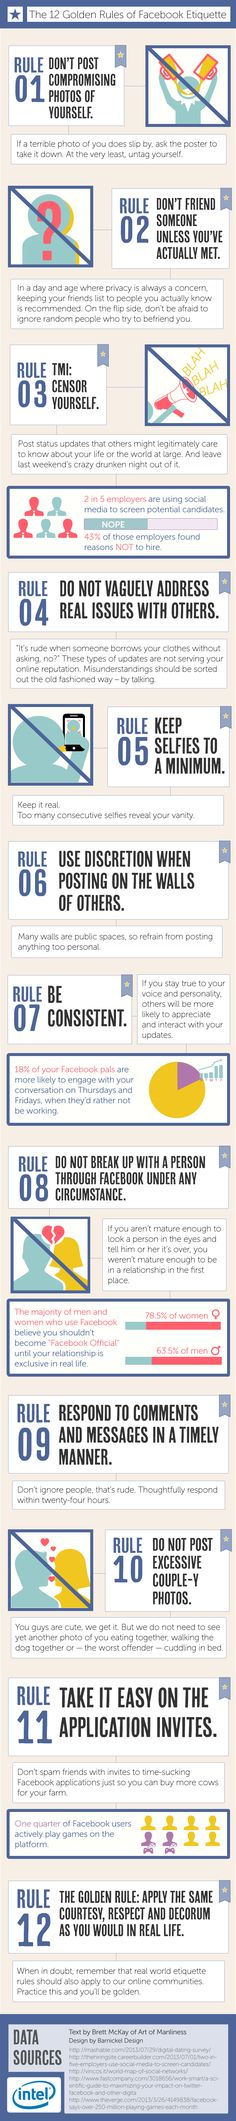 The 12 Golden Rules of #Facebook Etiquette - #SocialMedia #Infographic